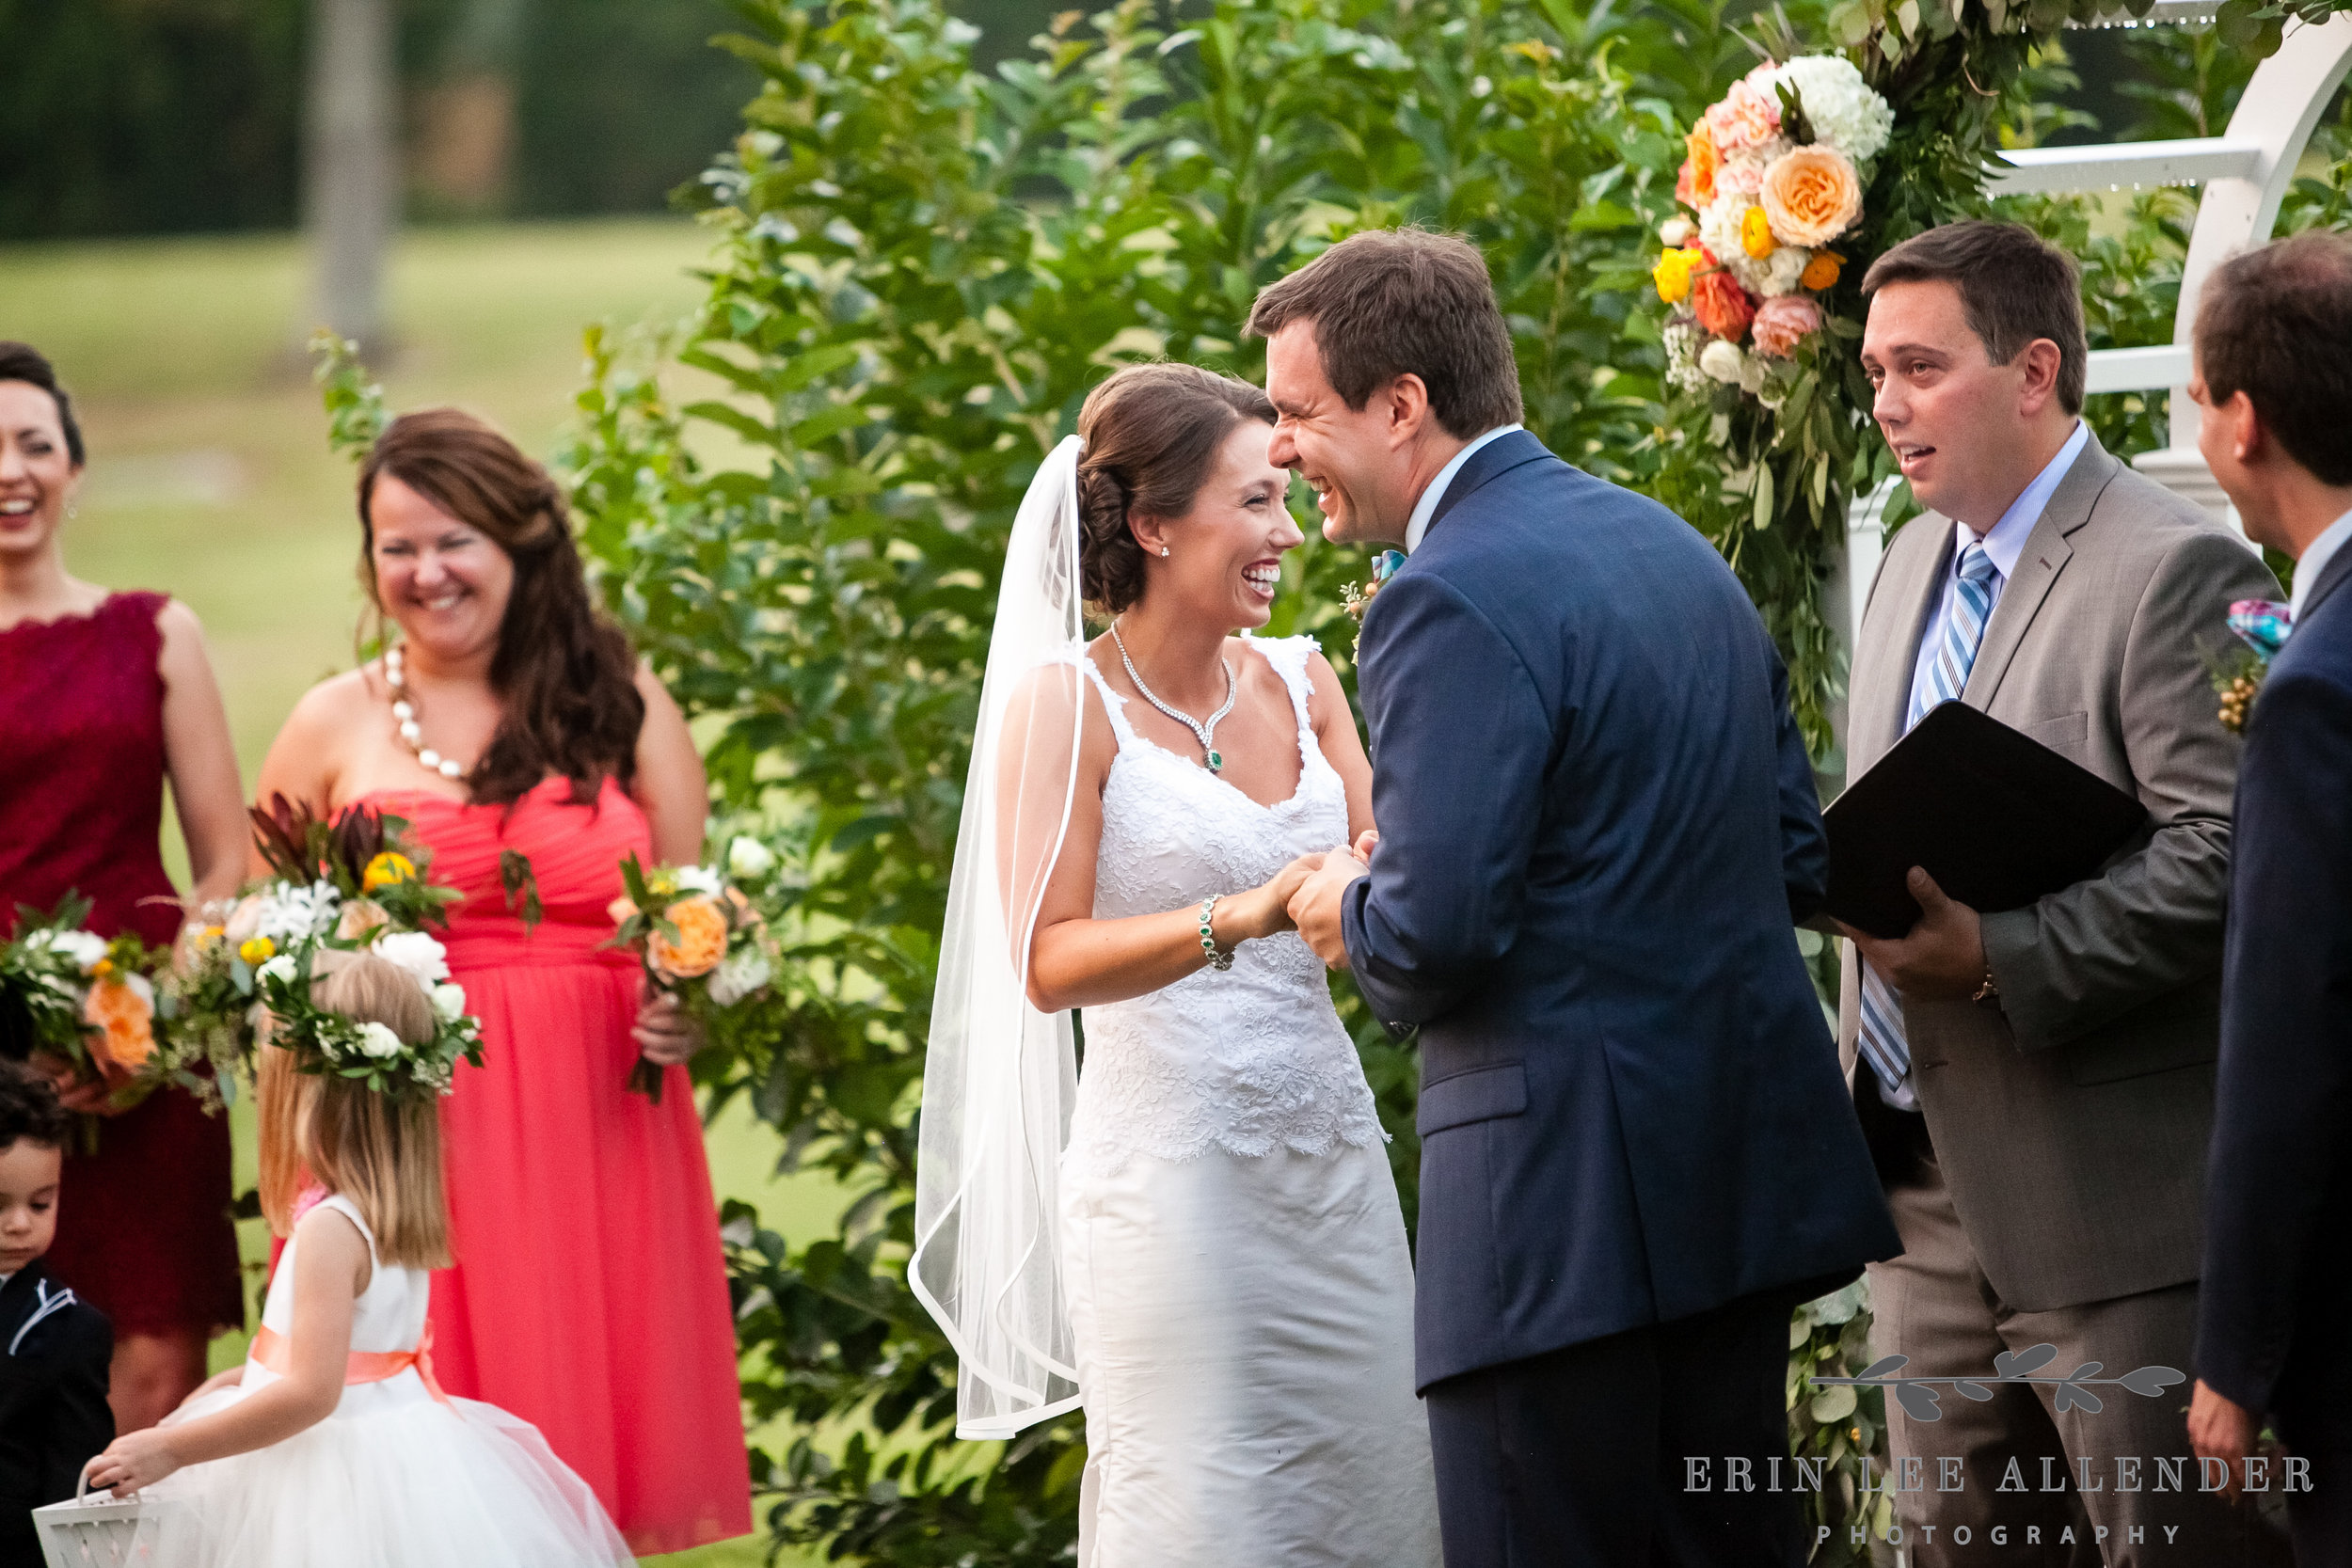 Bride_Groom_Laugh_At_Vows